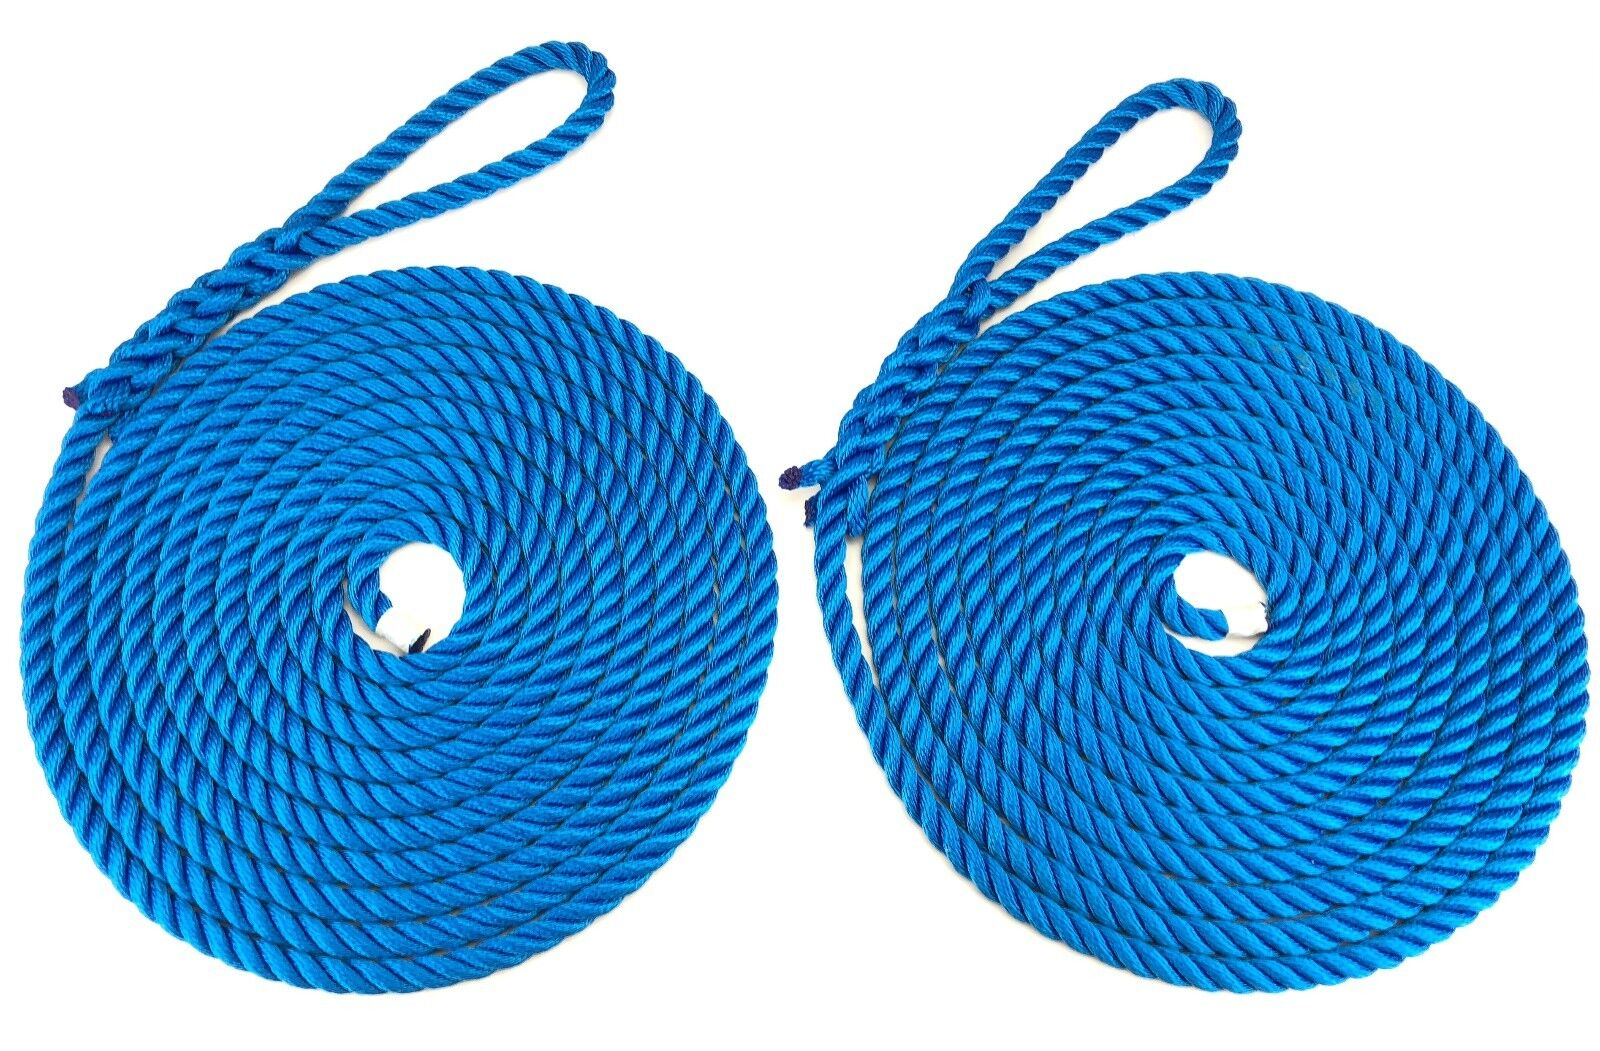 2 x 16 Metres of 10mm Royal bluee Mooring Ropes. Warps, Boat Lines, Yachts, Canal